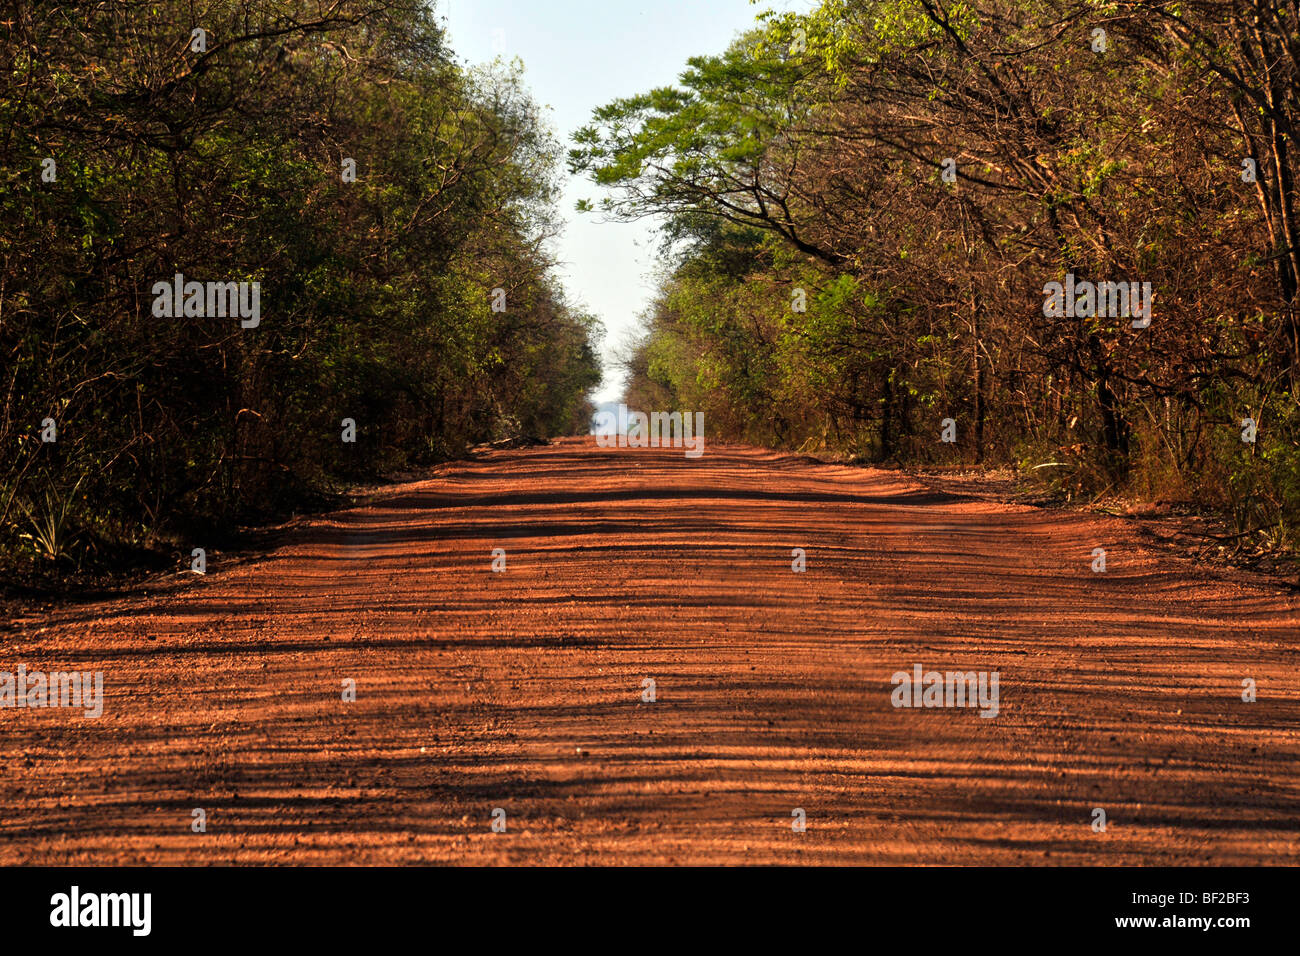 Dirt road near Bonito, Mato Grosso do Sul Brazil - Stock Image